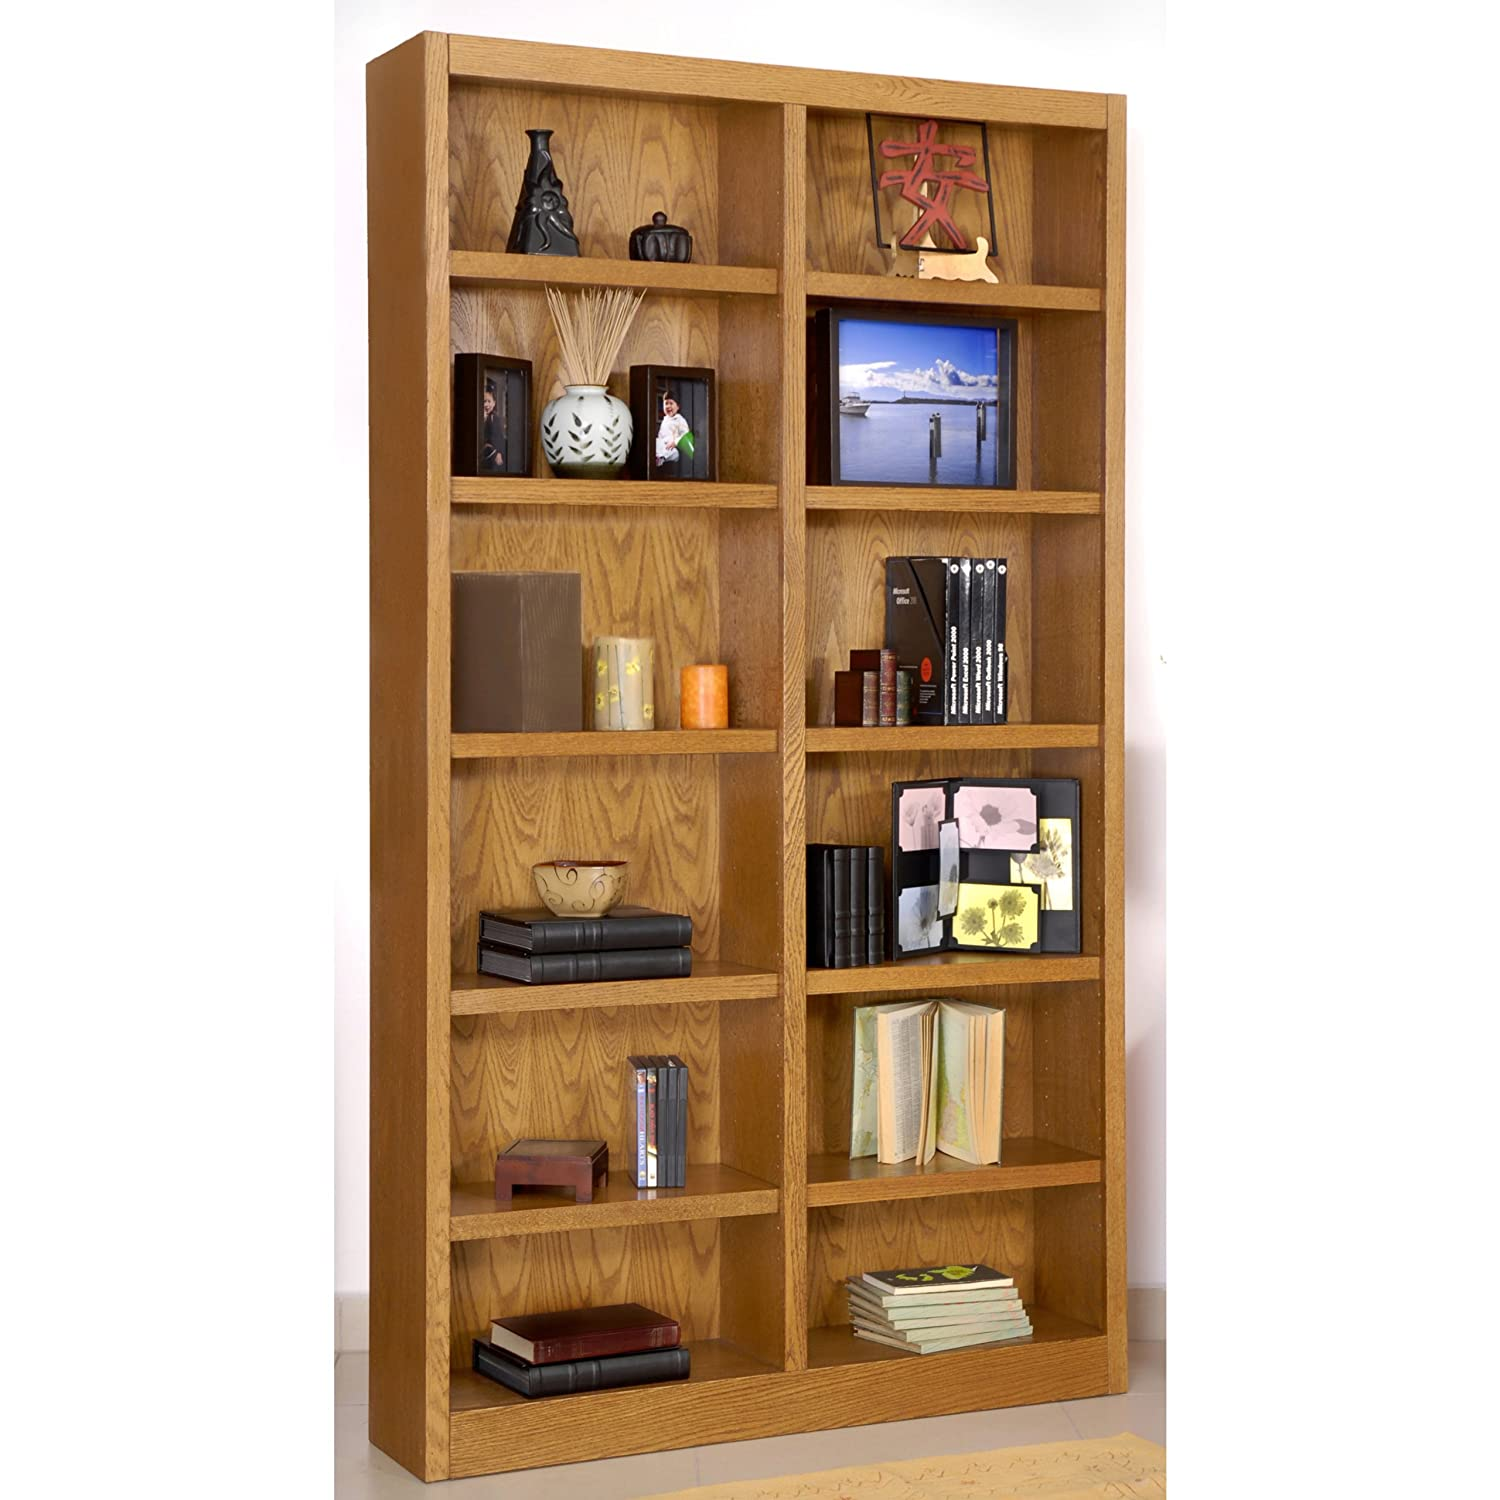 Concepts In Wood Double-wide 12-shelf Bookcase, MED OAK: Amazon.ca: Home &  Kitchen